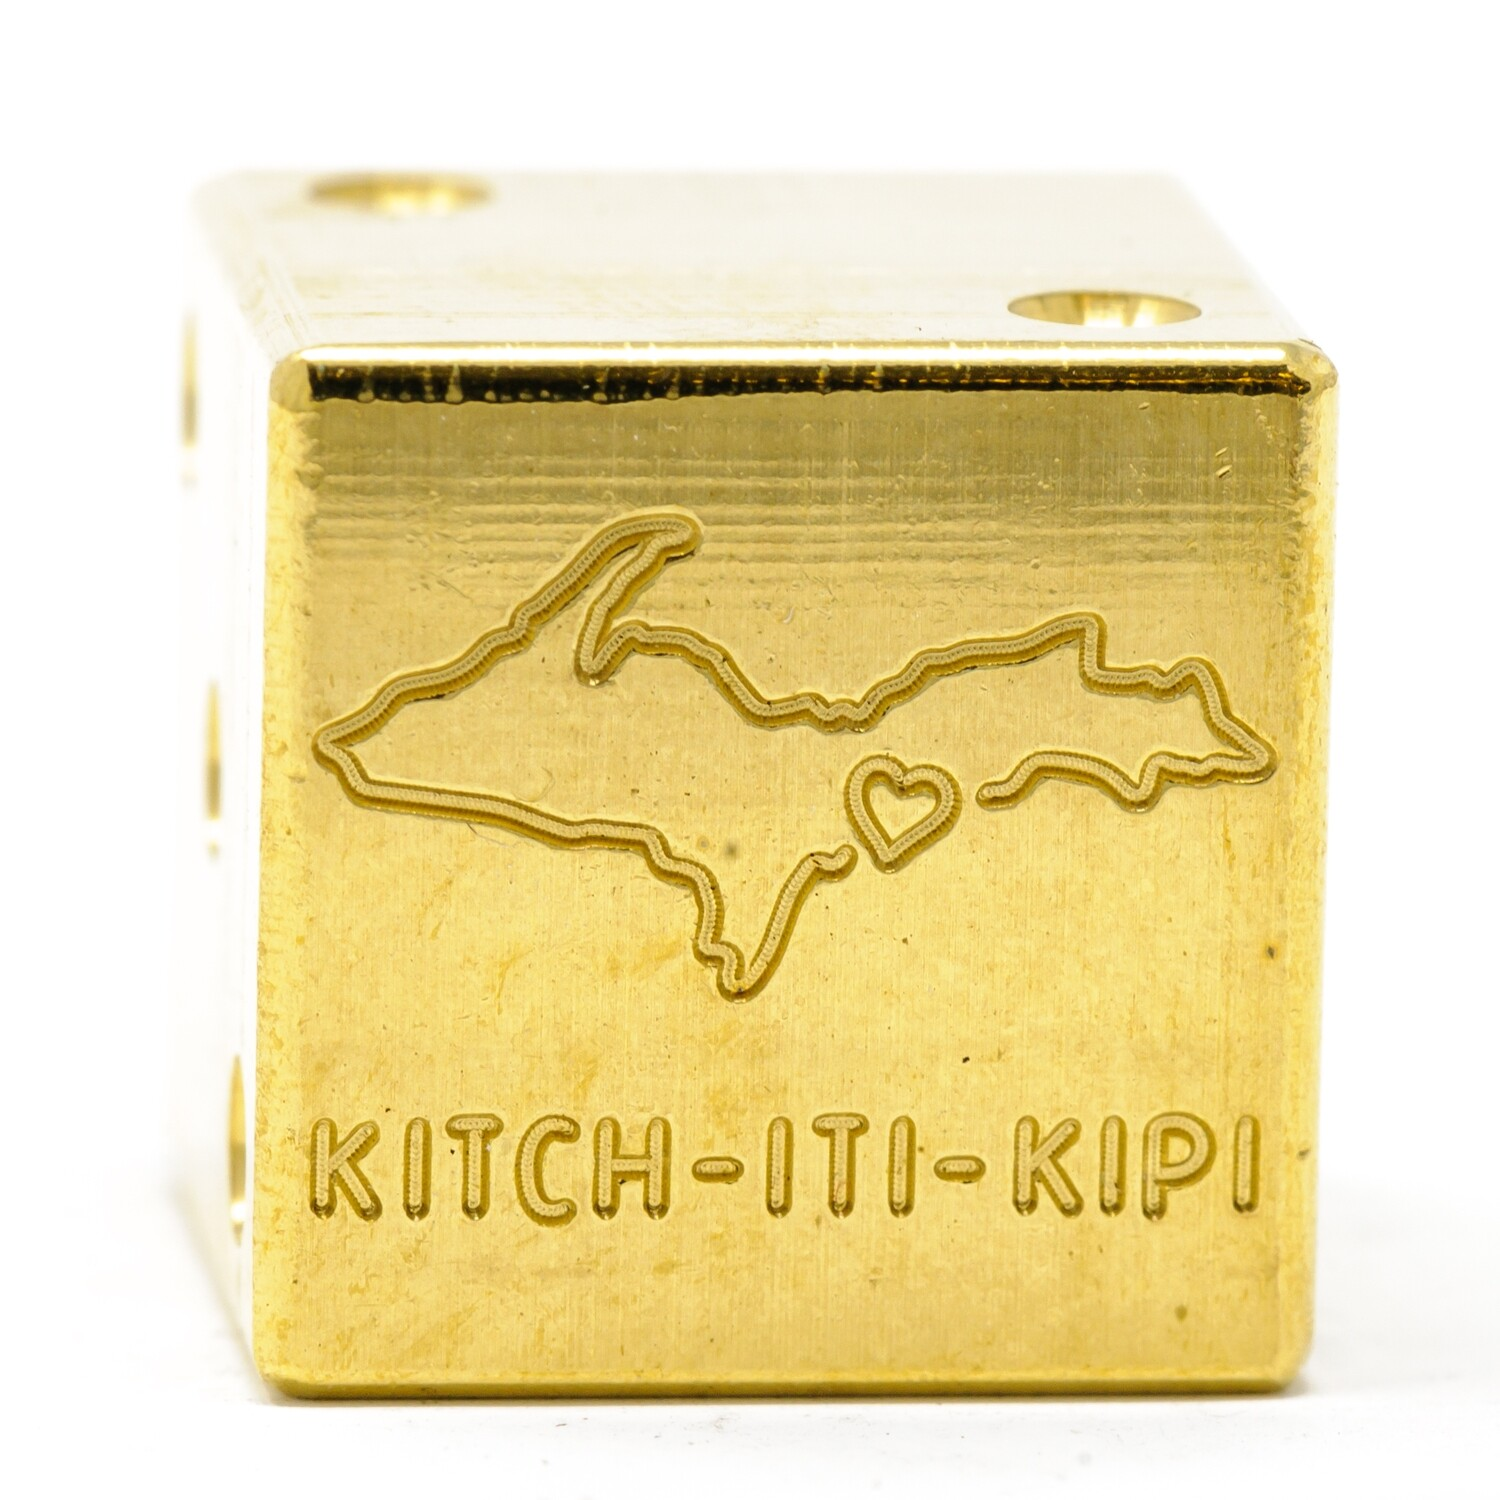 Kitch-iti-kipi